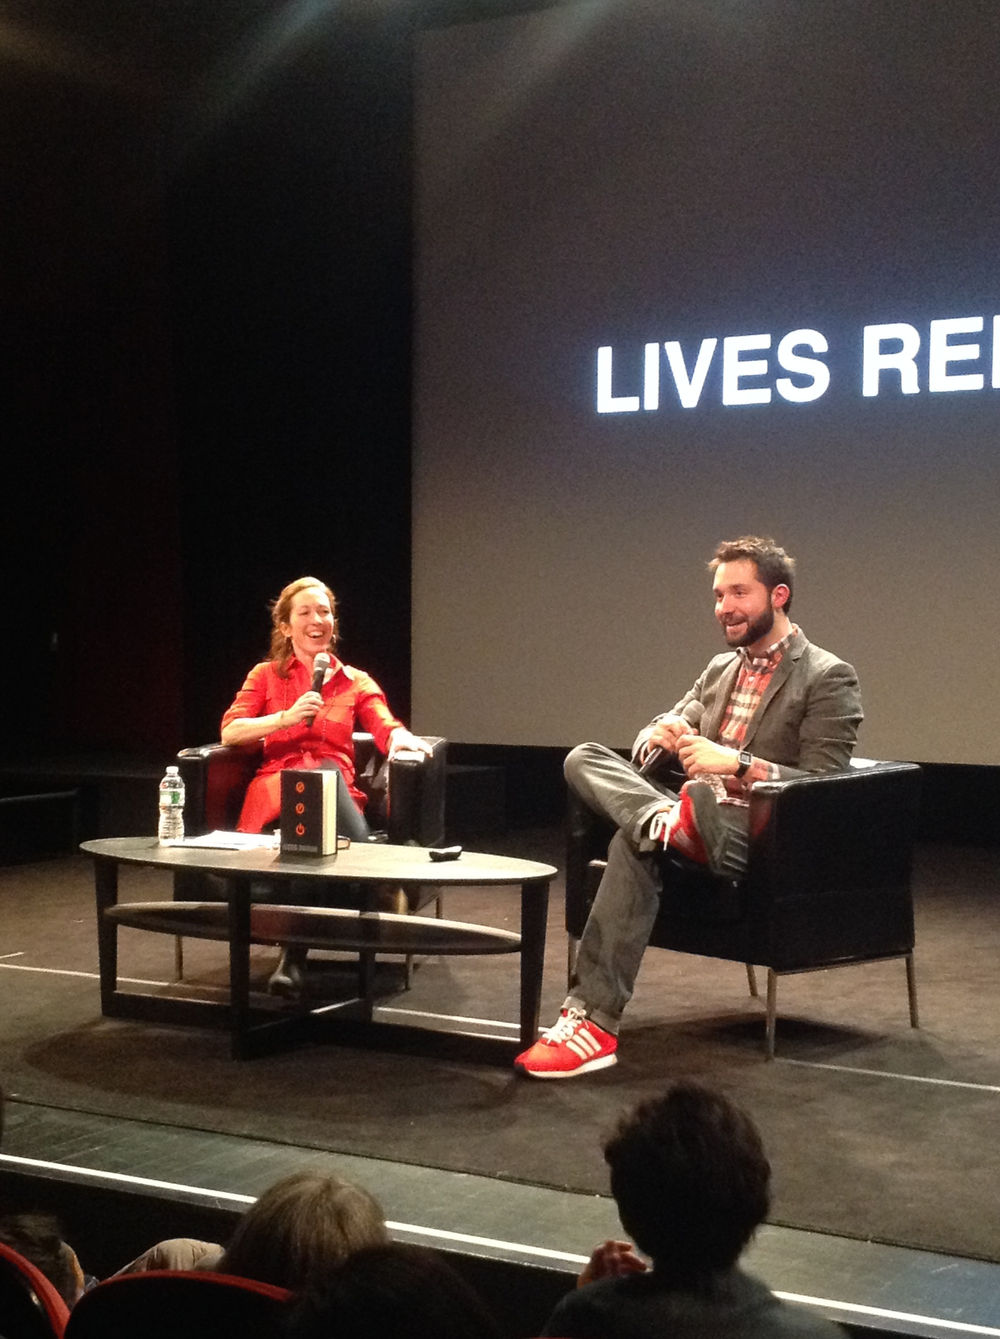 Schuyler Brown and Alexis Ohanian